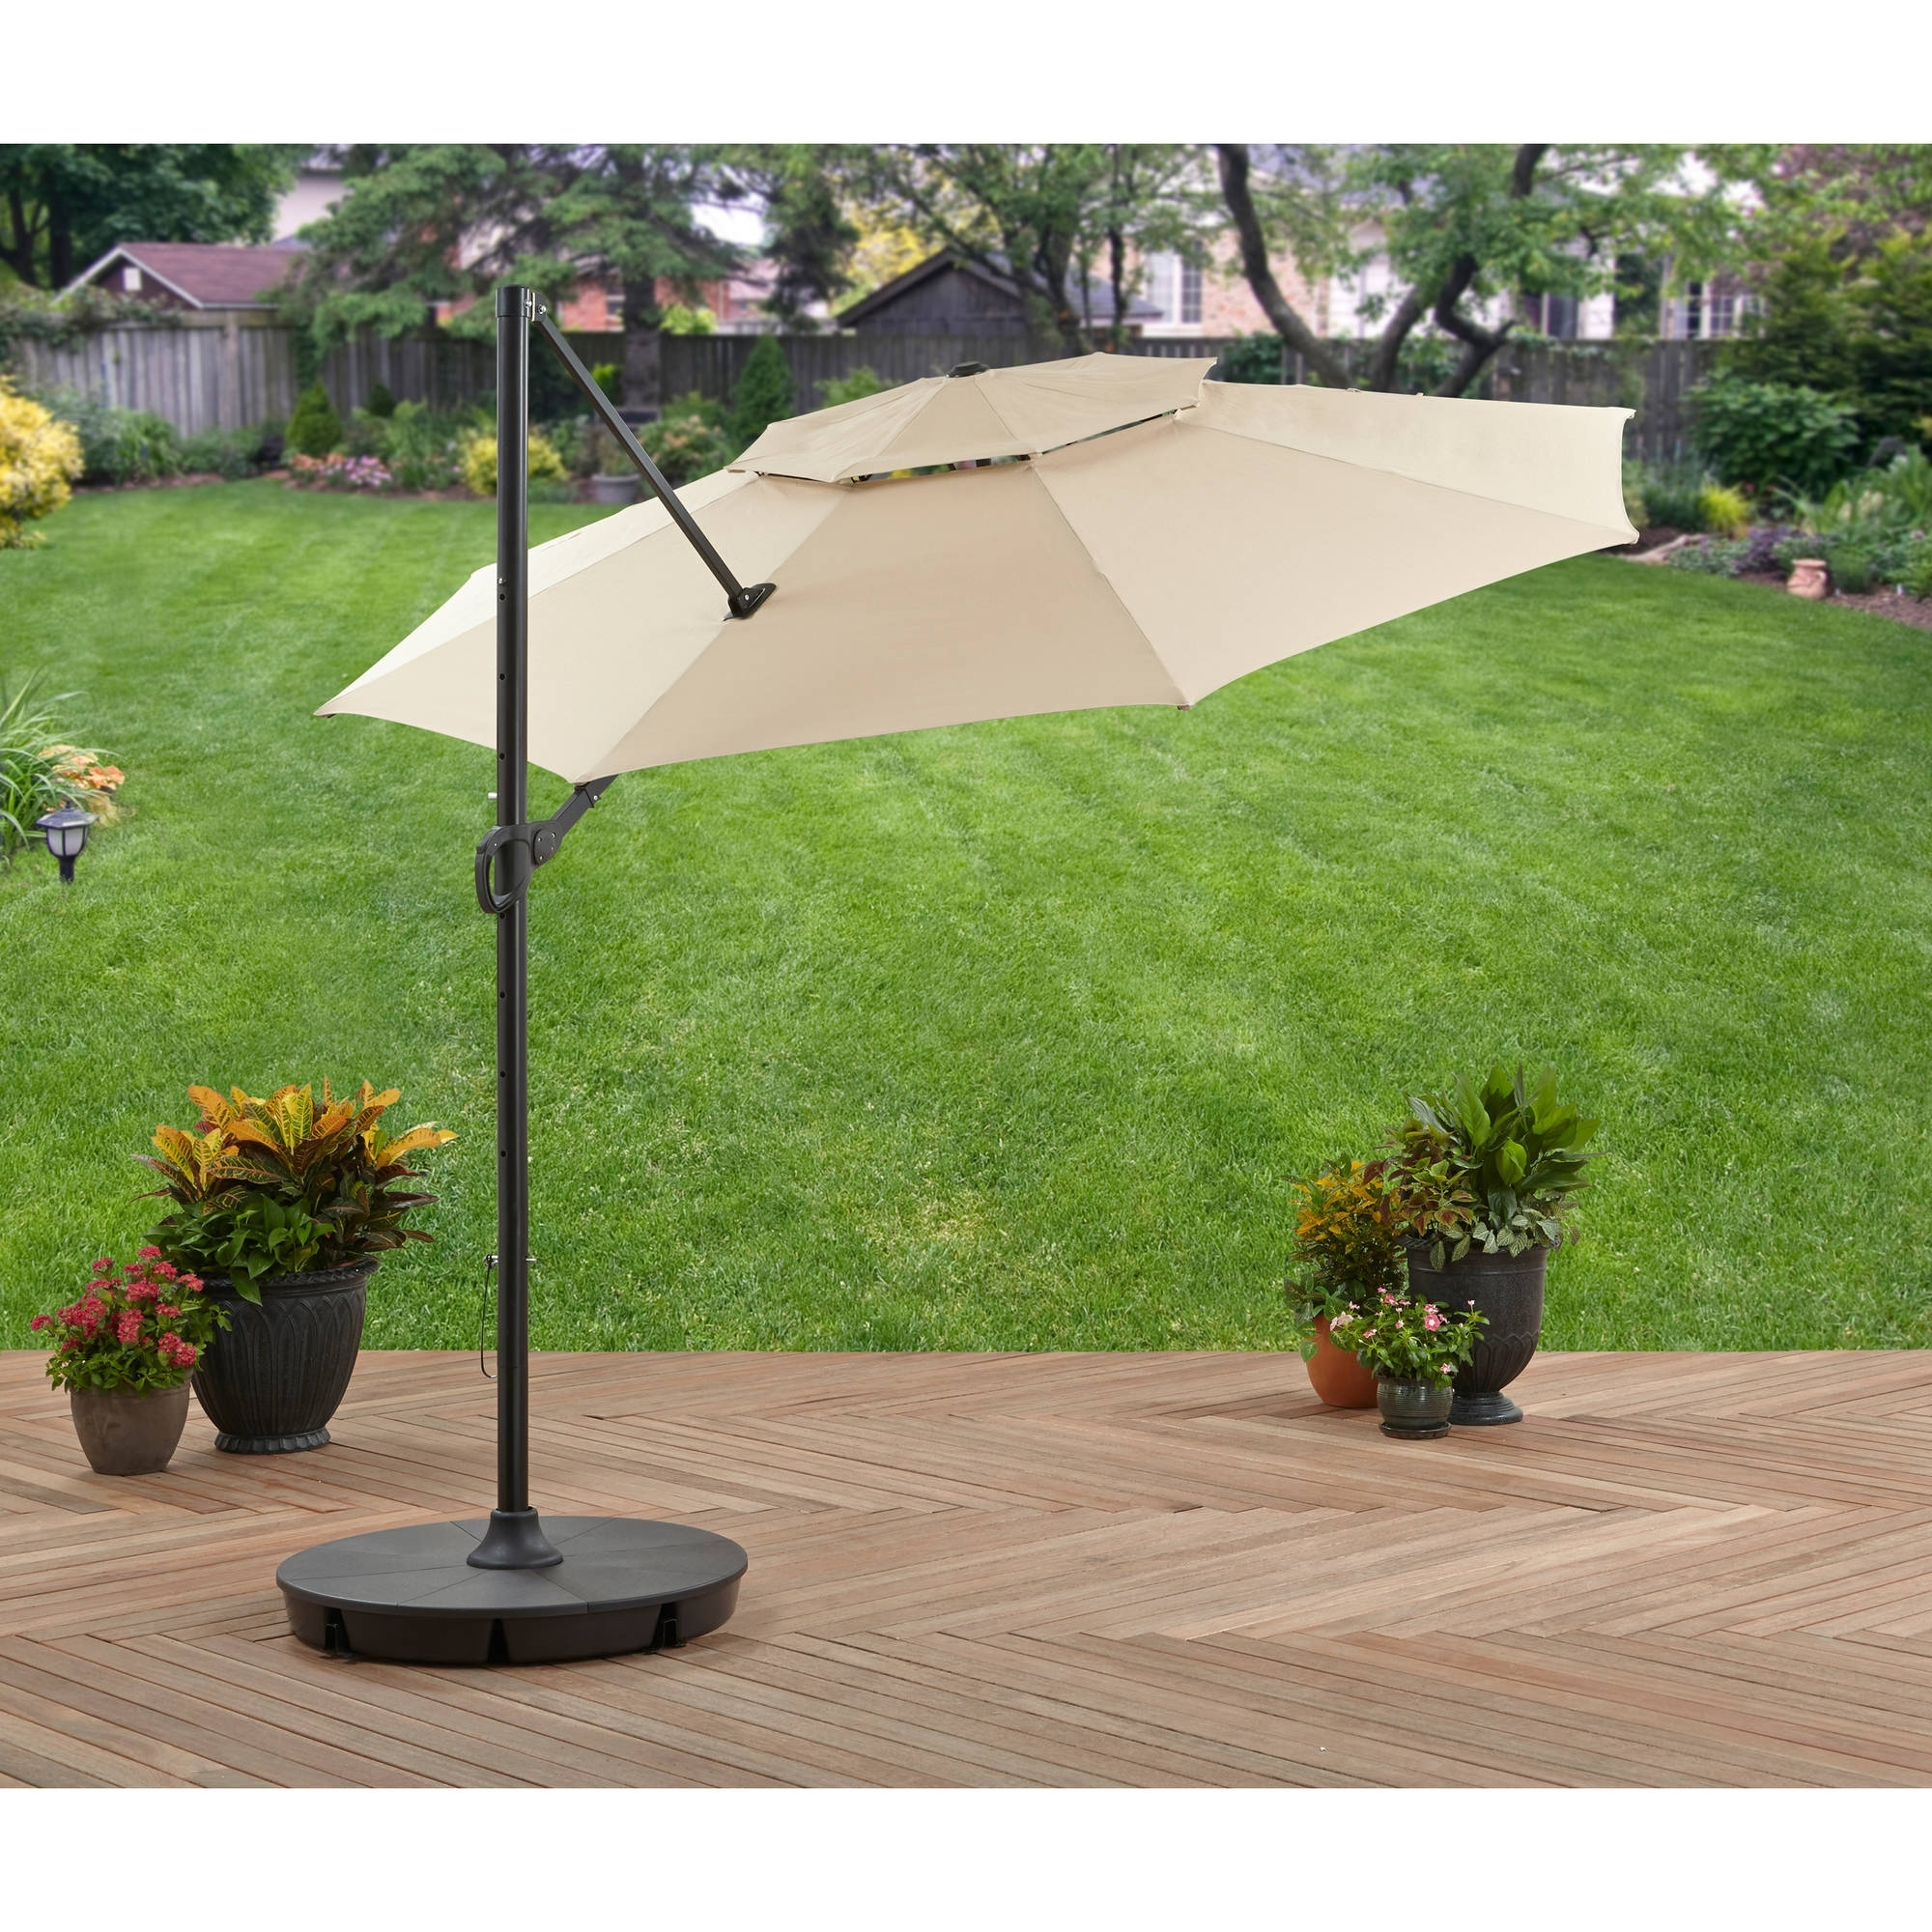 Sunbrella Patio Umbrellas At Walmart Pertaining To Most Current Better Homes And Gardens 9' Market Umbrella, Red – Walmart (View 16 of 20)